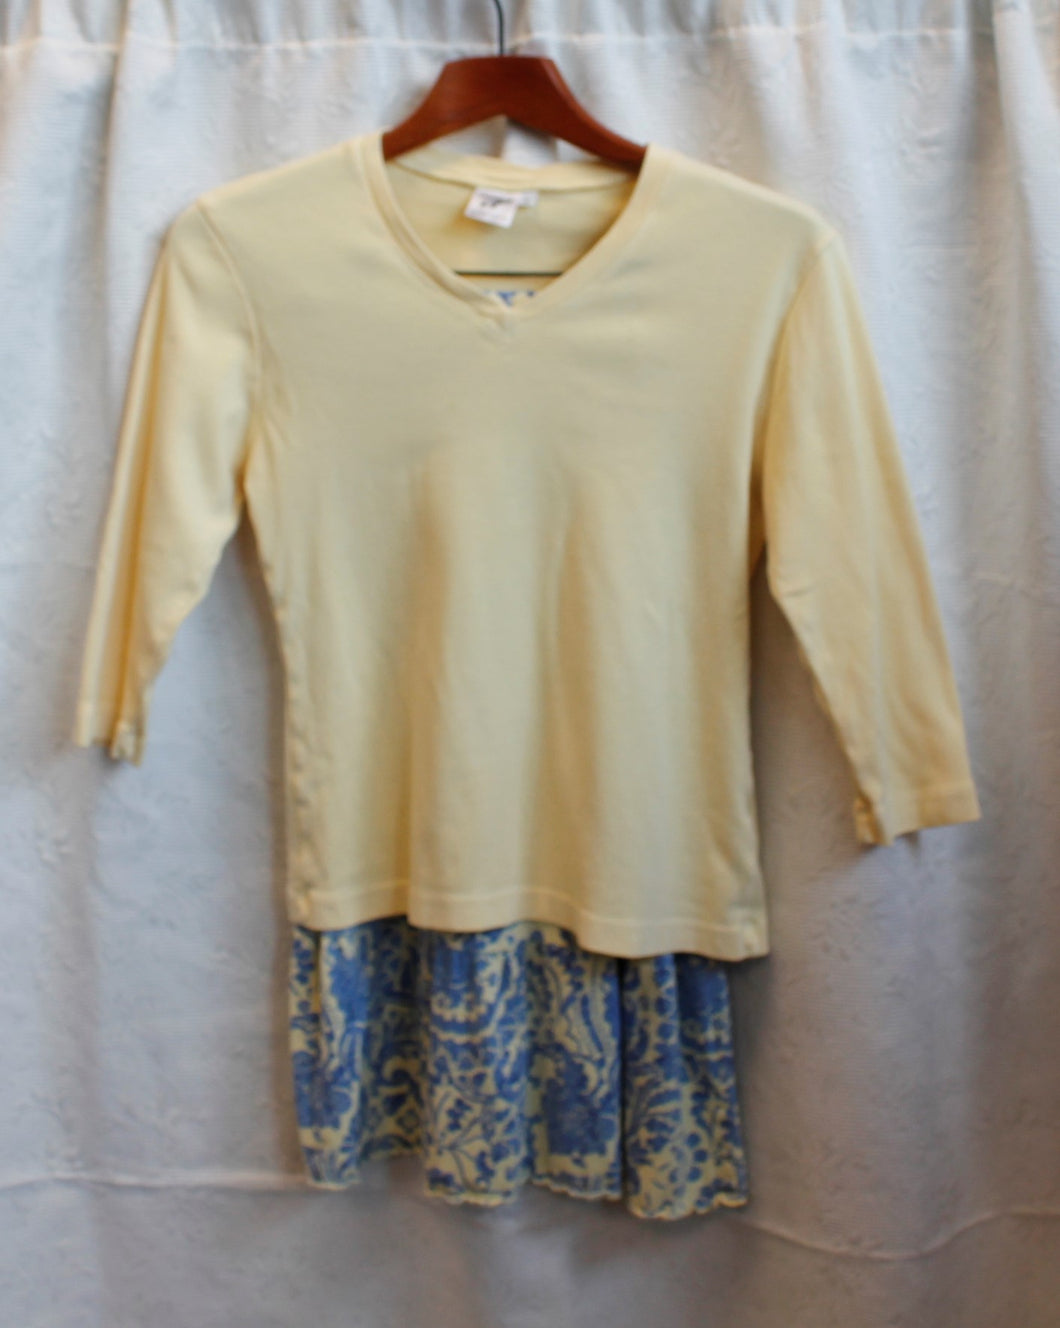 Women's Top and Skirt Set                        S                                         1/13B